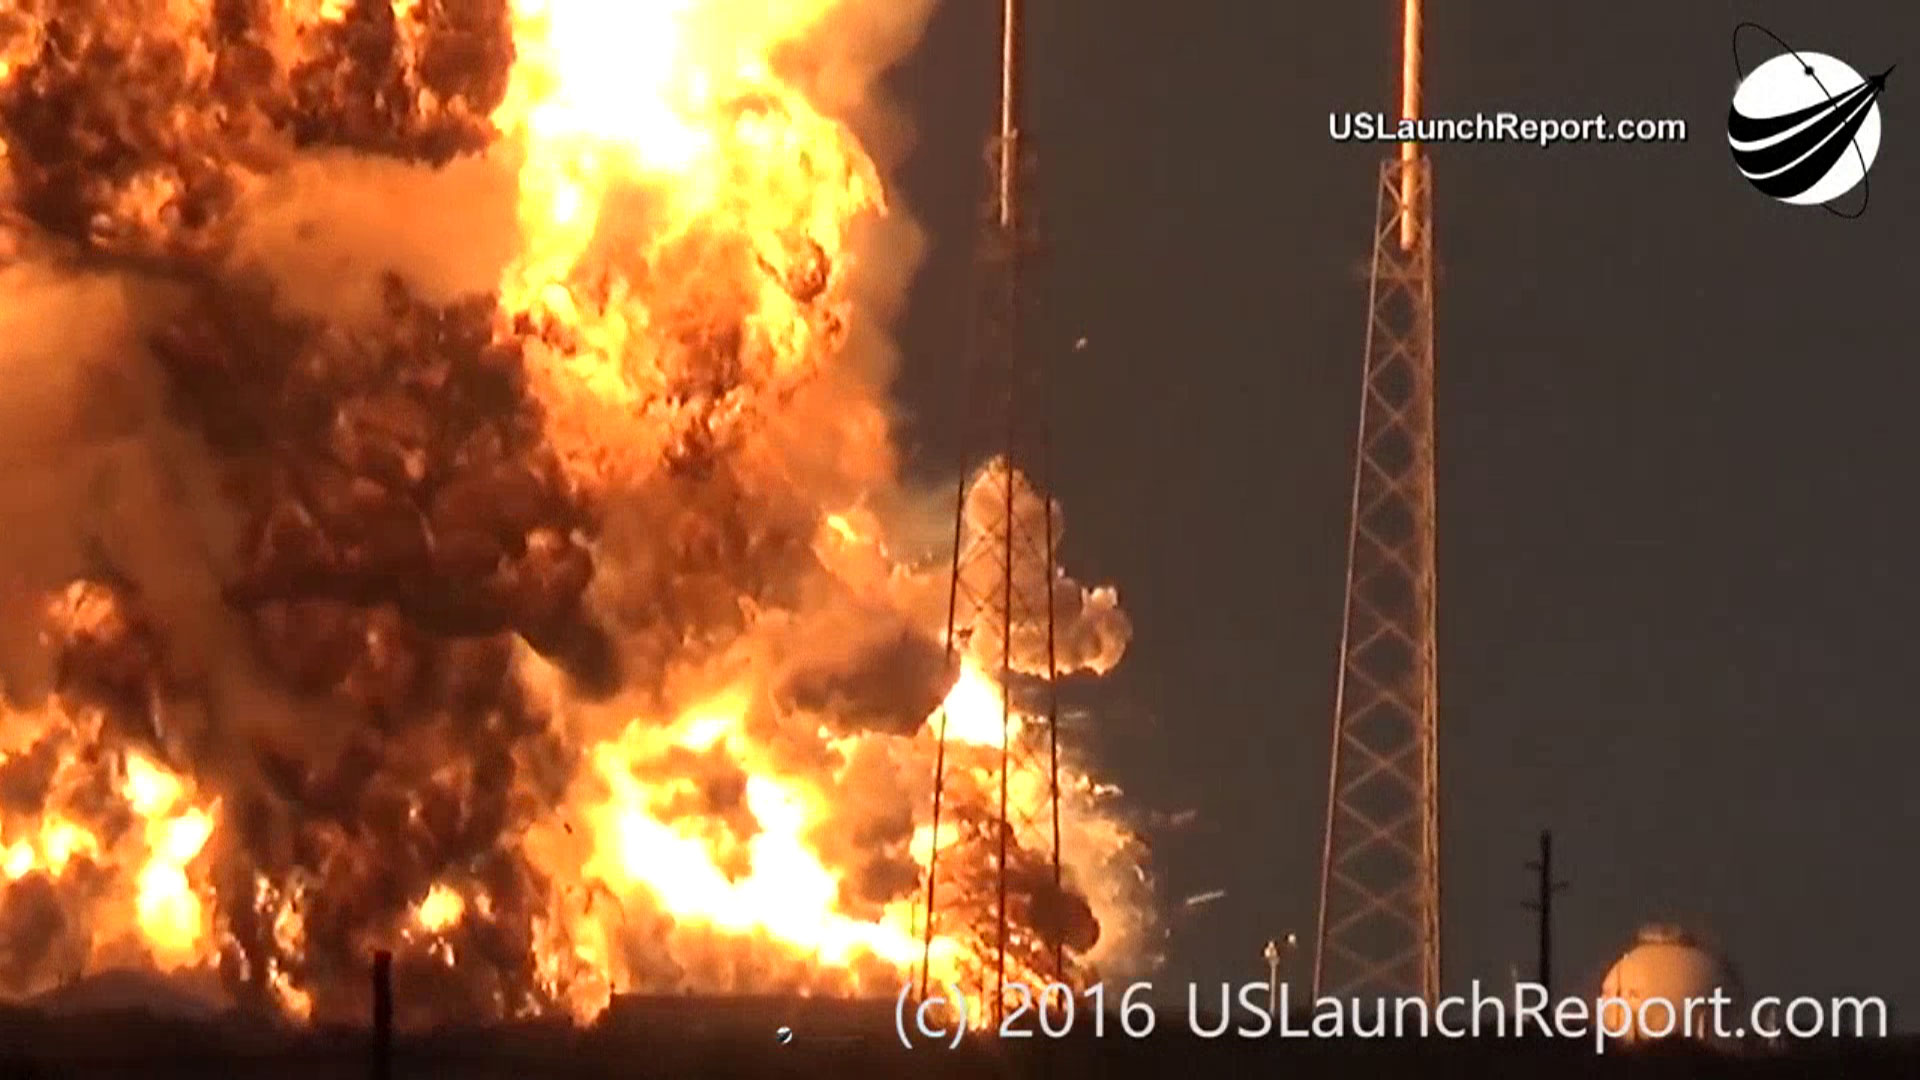 WATCH Caught on camera SpaceX rocket explodes during testing